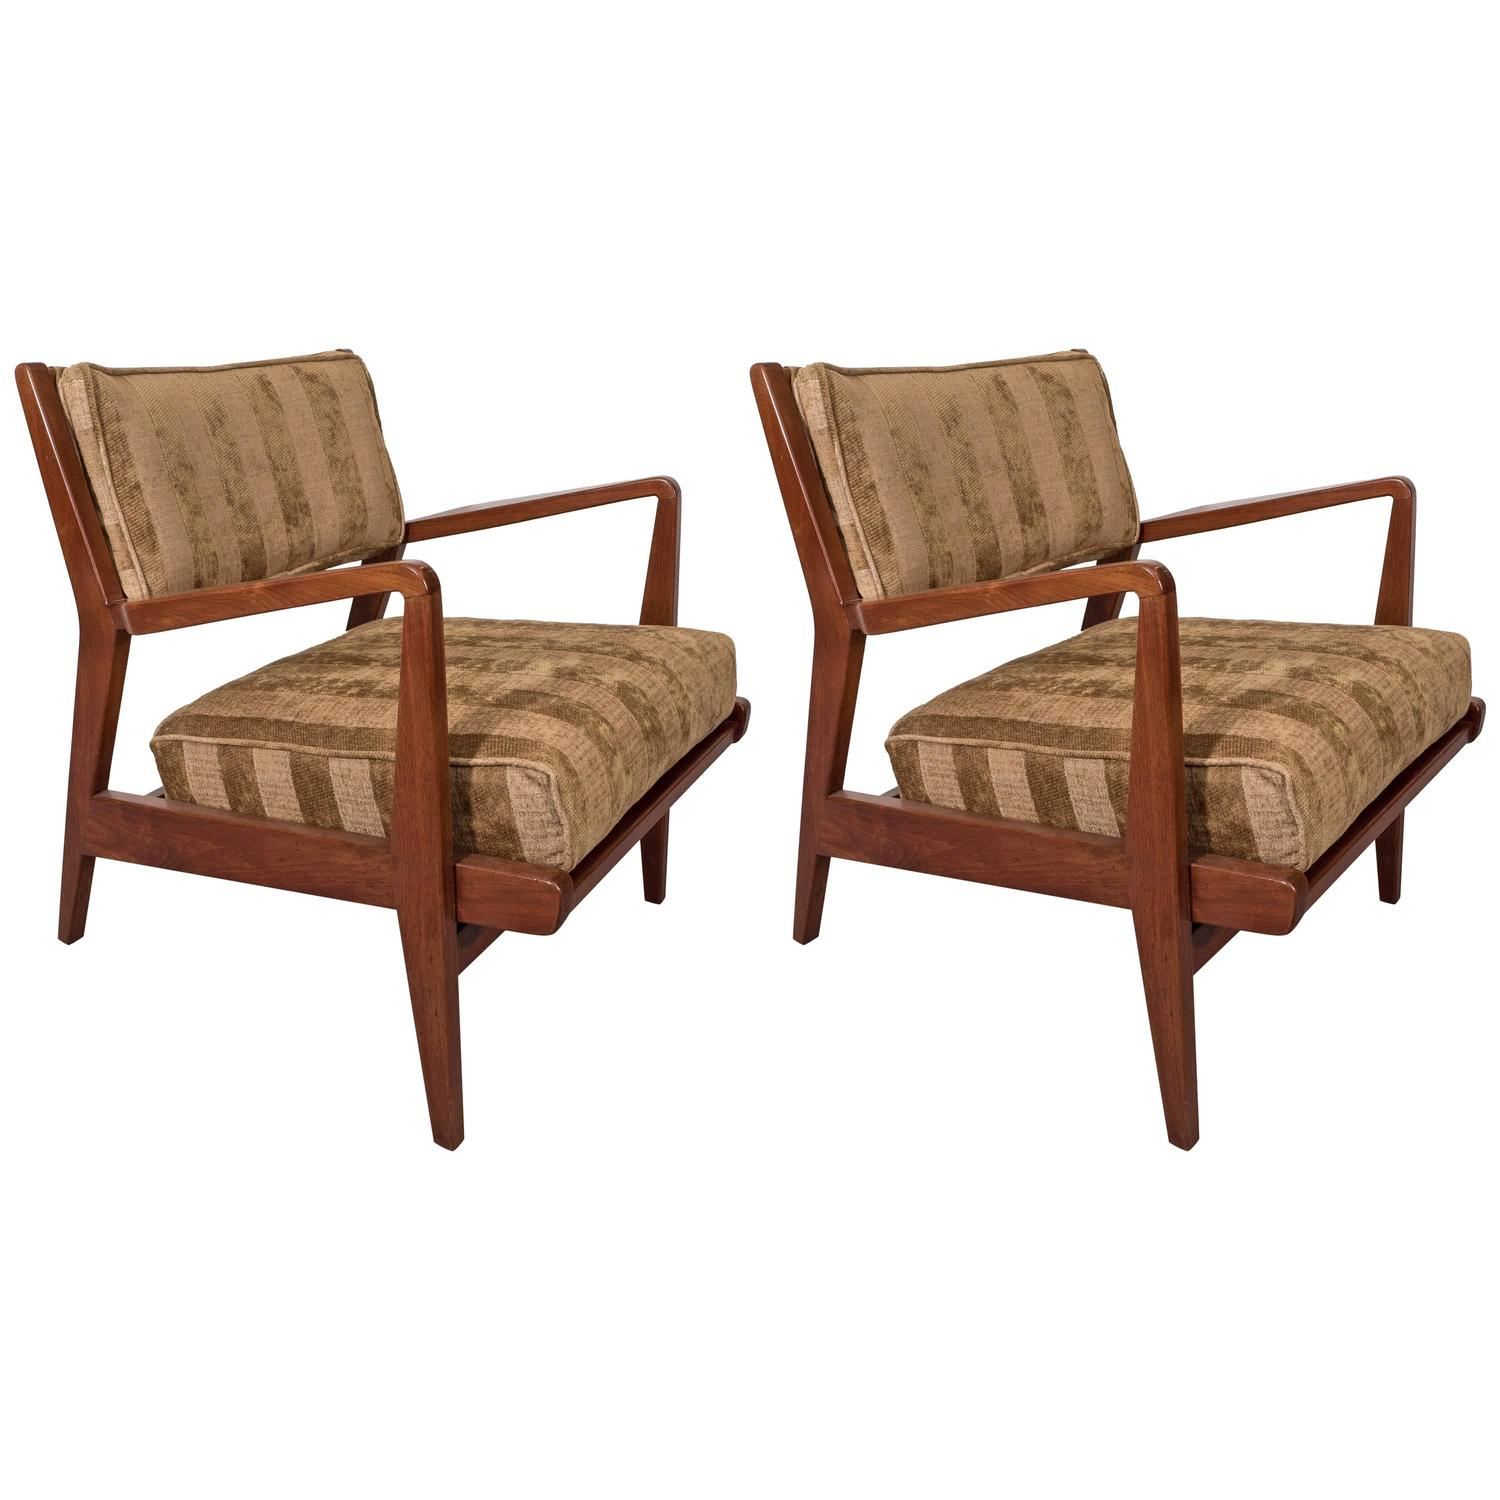 Pair Of Mid-Century Jens Risom Walnut Occasional Armchairs